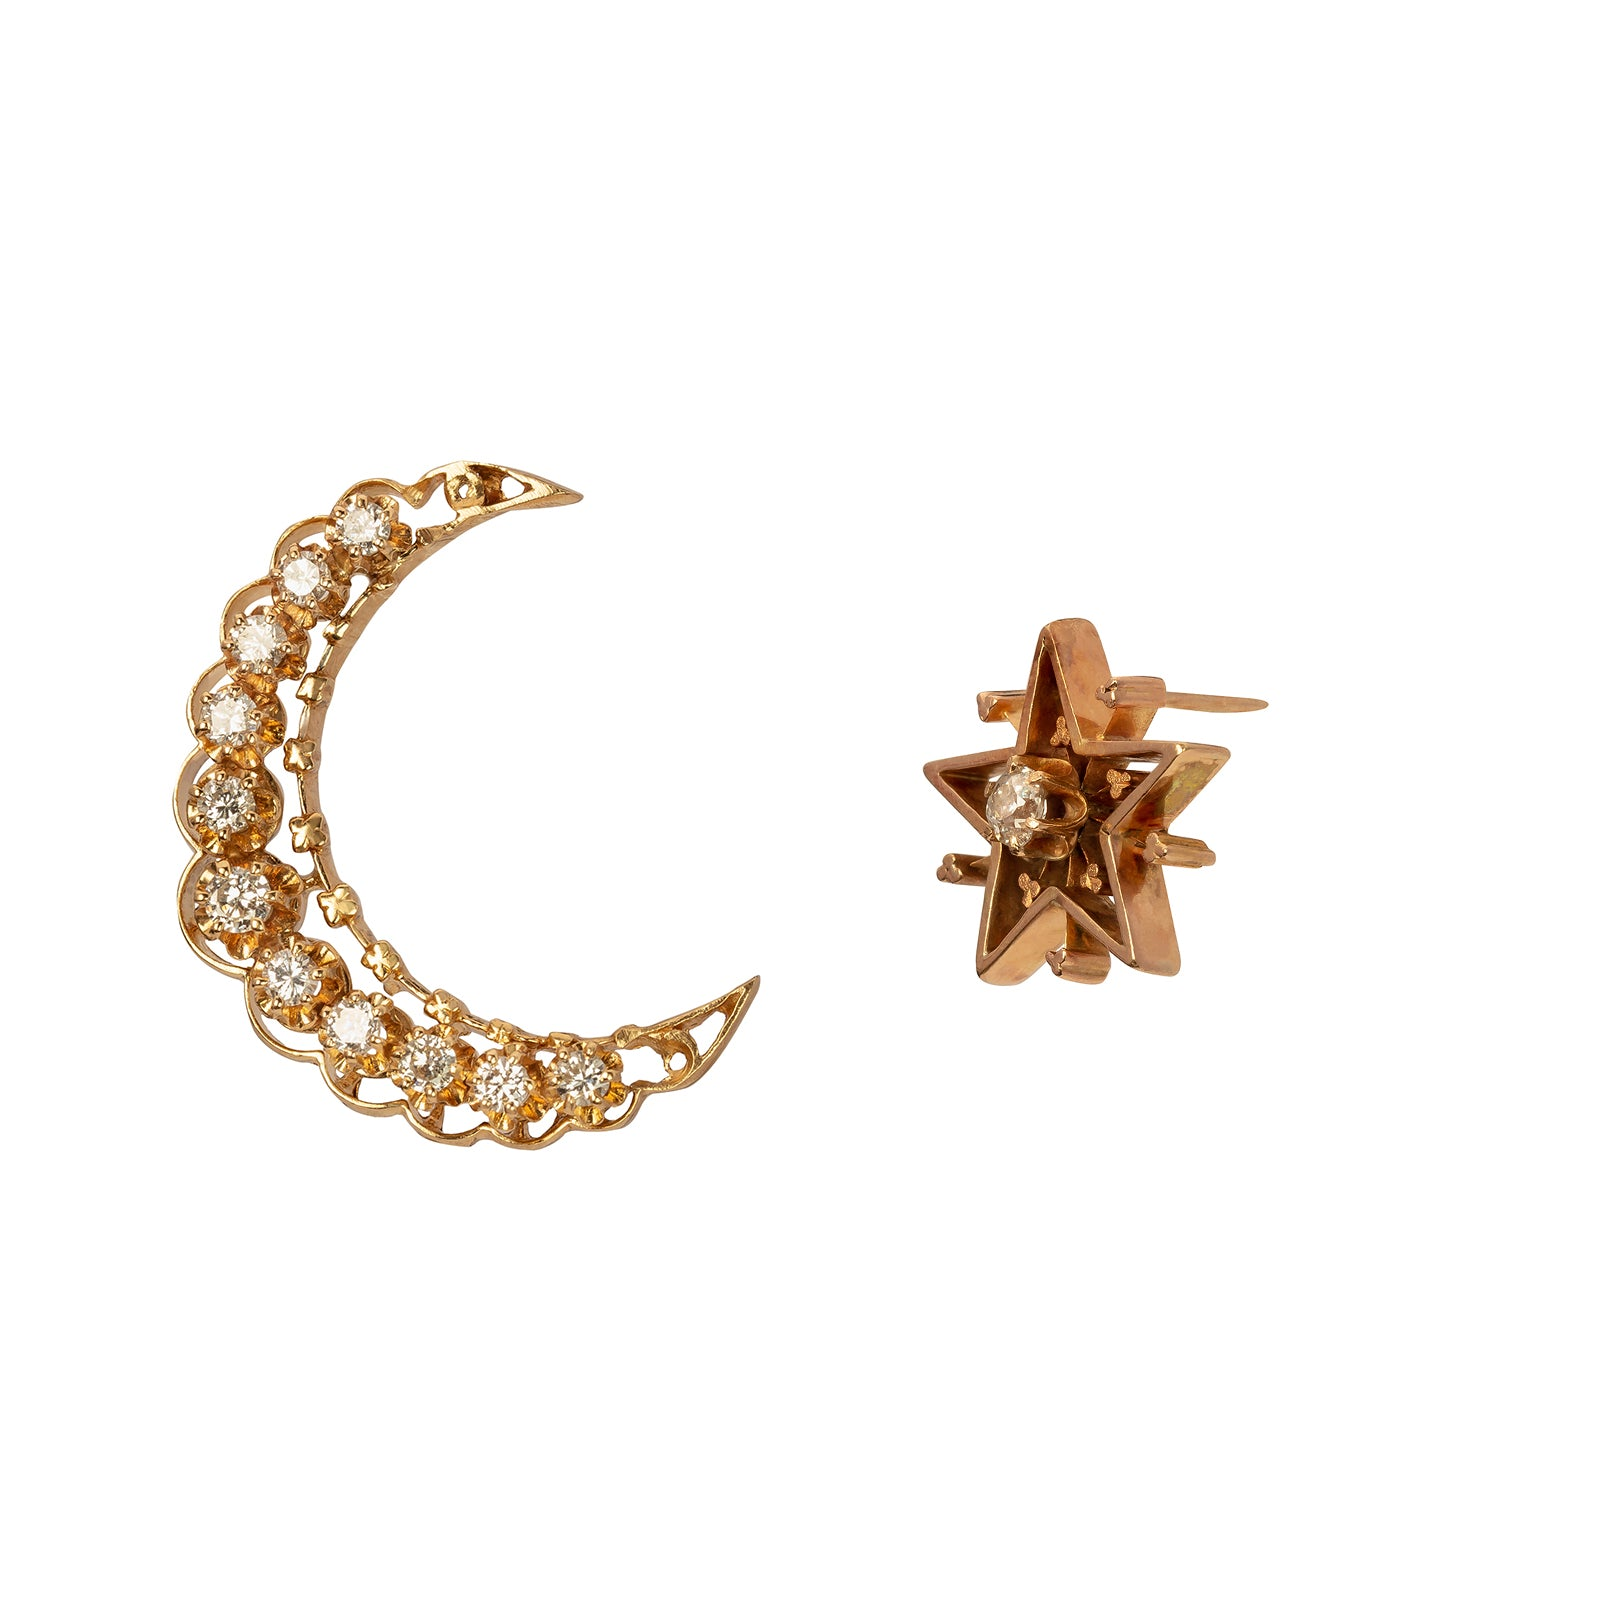 Jenna Blake Victorian Moon & Star Stud Earrings - Earrings - Broken English Jewelry